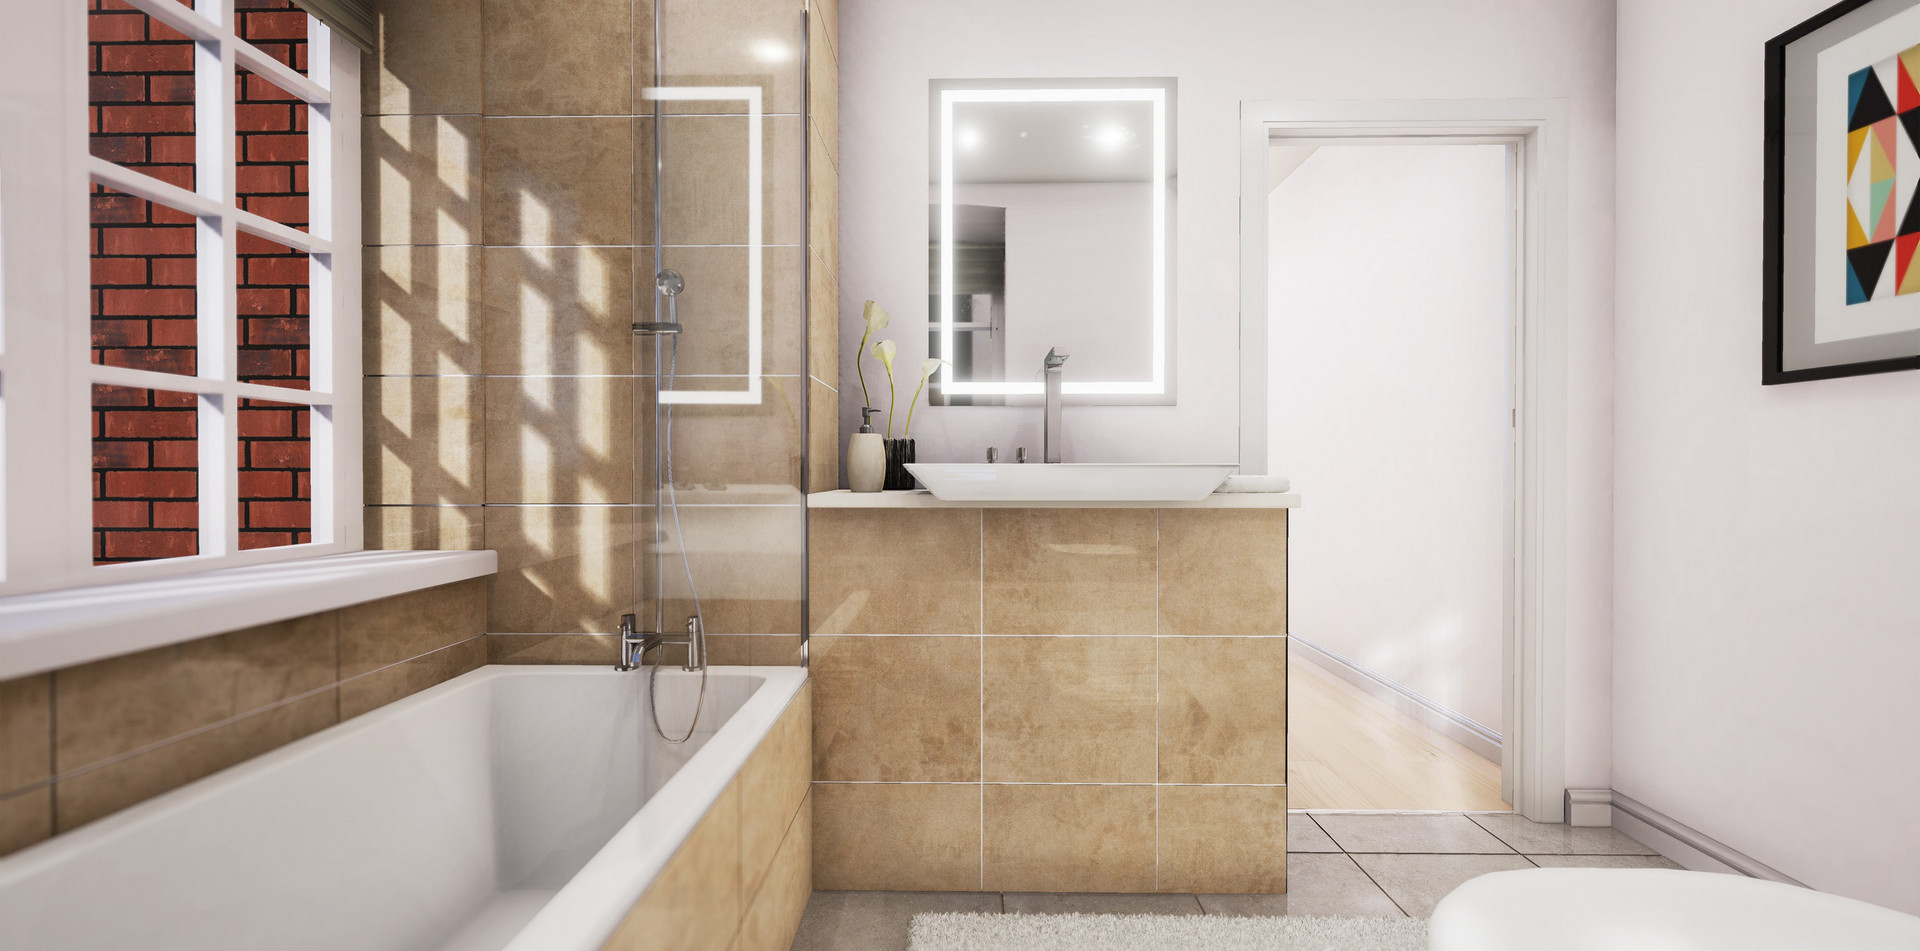 The New Eldon Grove Residential Property Investment in Liverpool